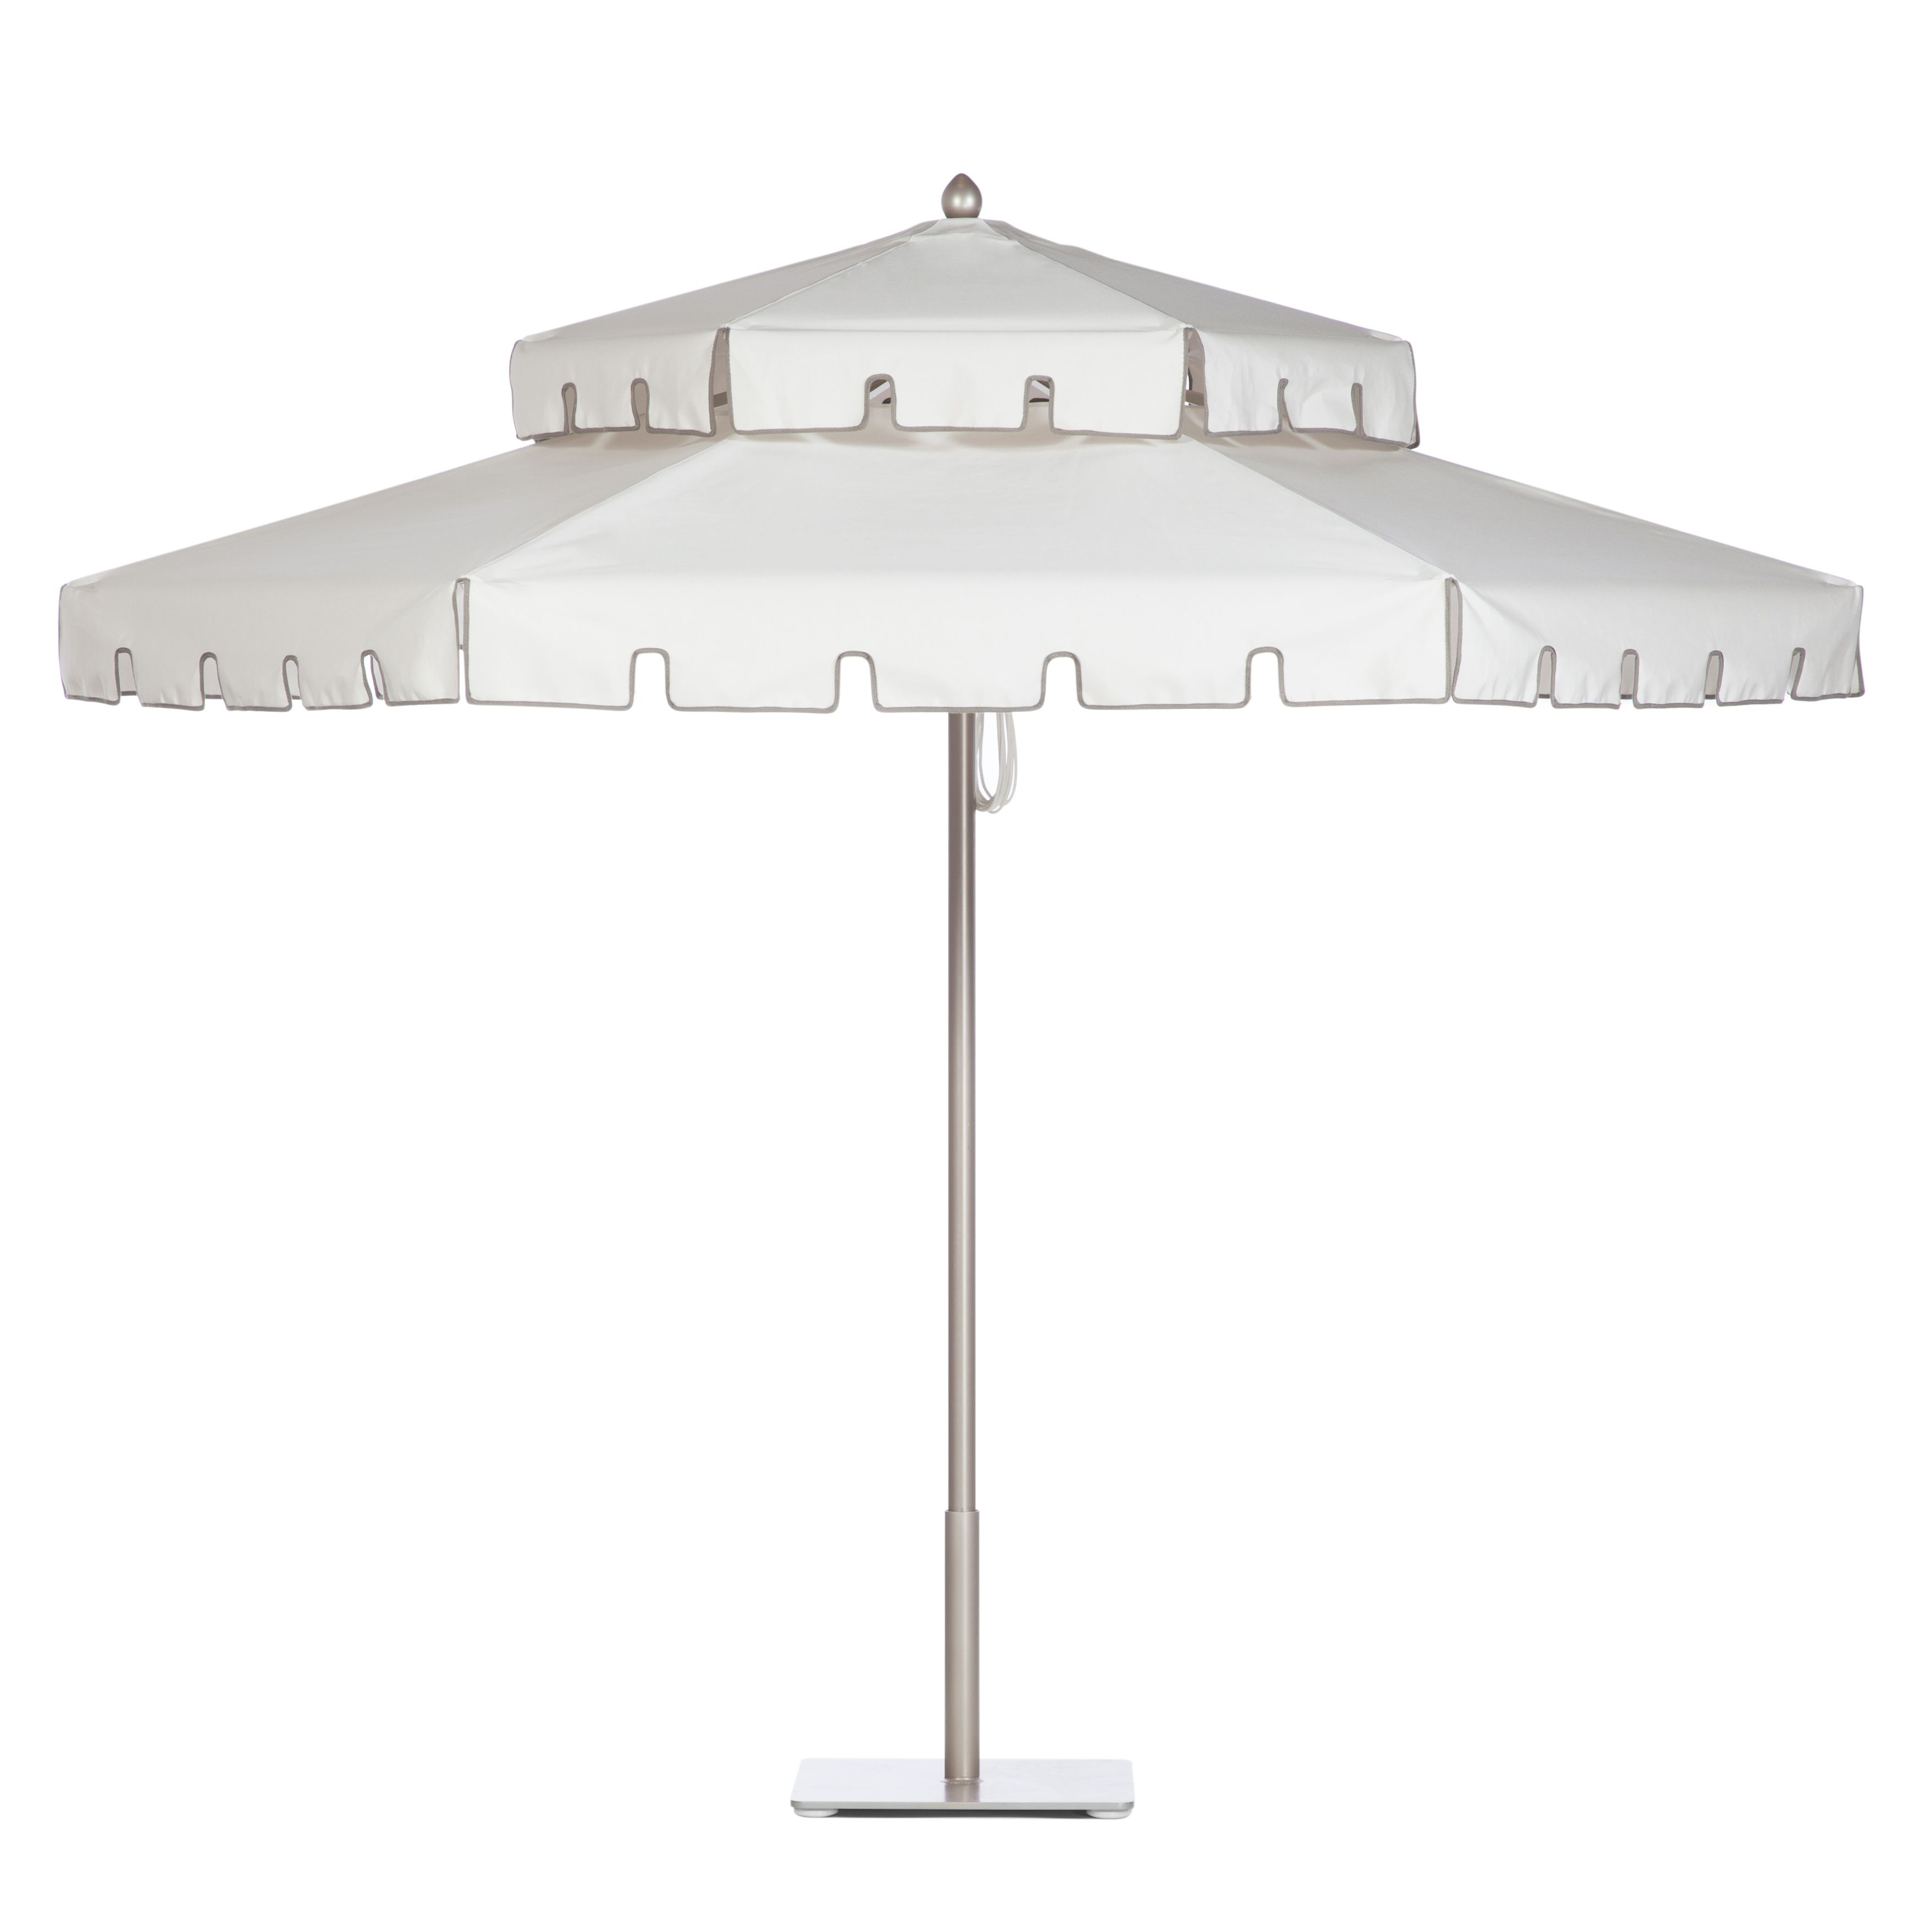 Double Decker Umbrella With Sandstone Frame In Oyster Keyhole